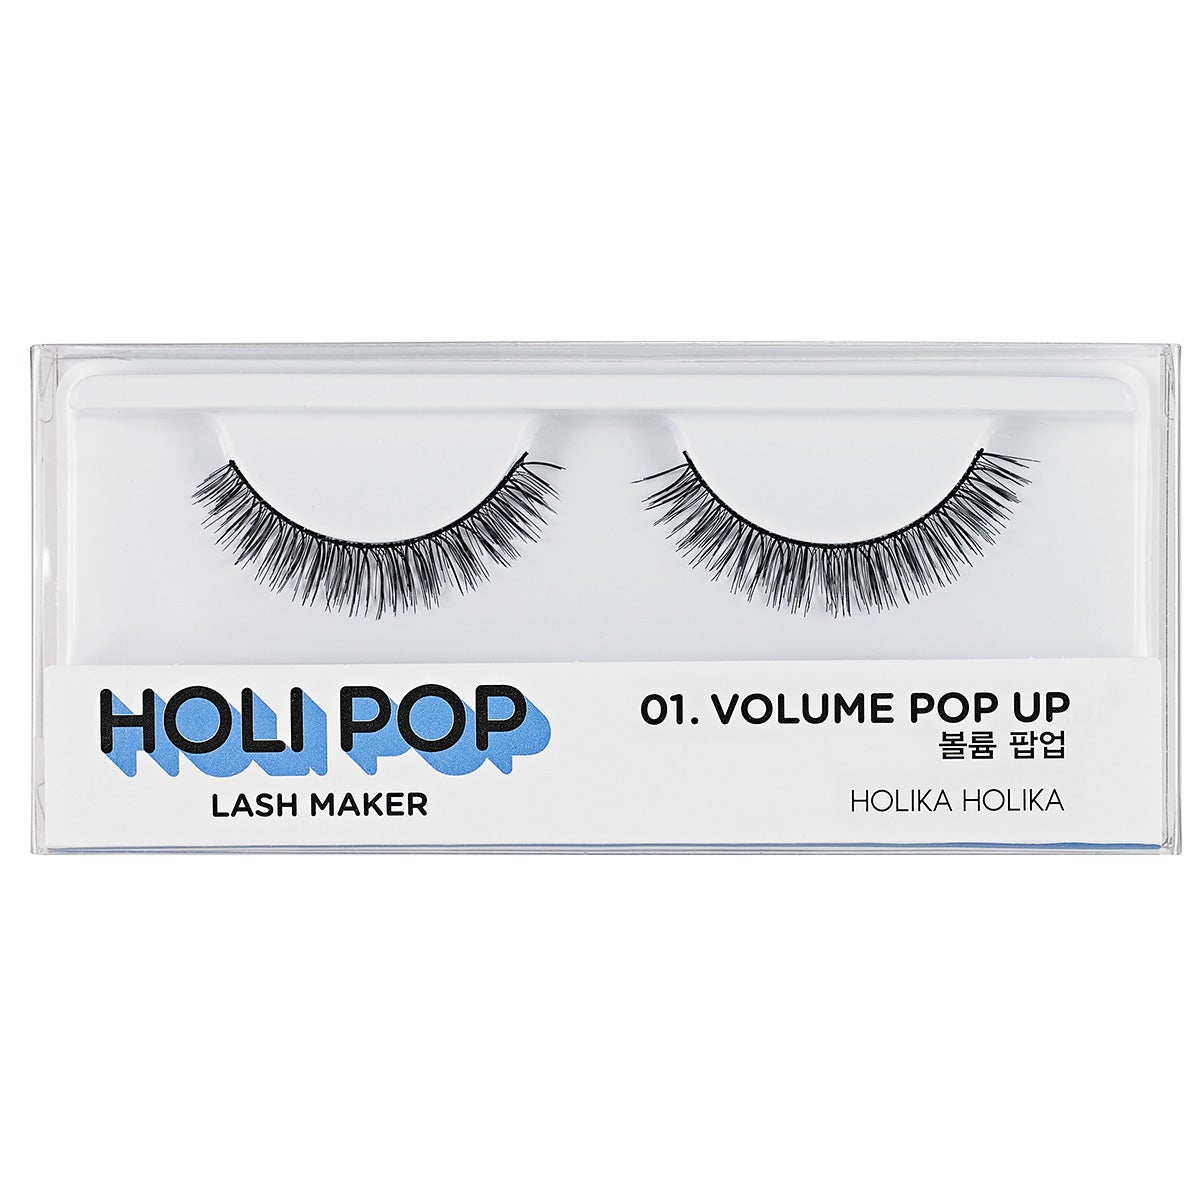 Holika Holika Holi Pop Lash Maker - 1 Volume Pop Up